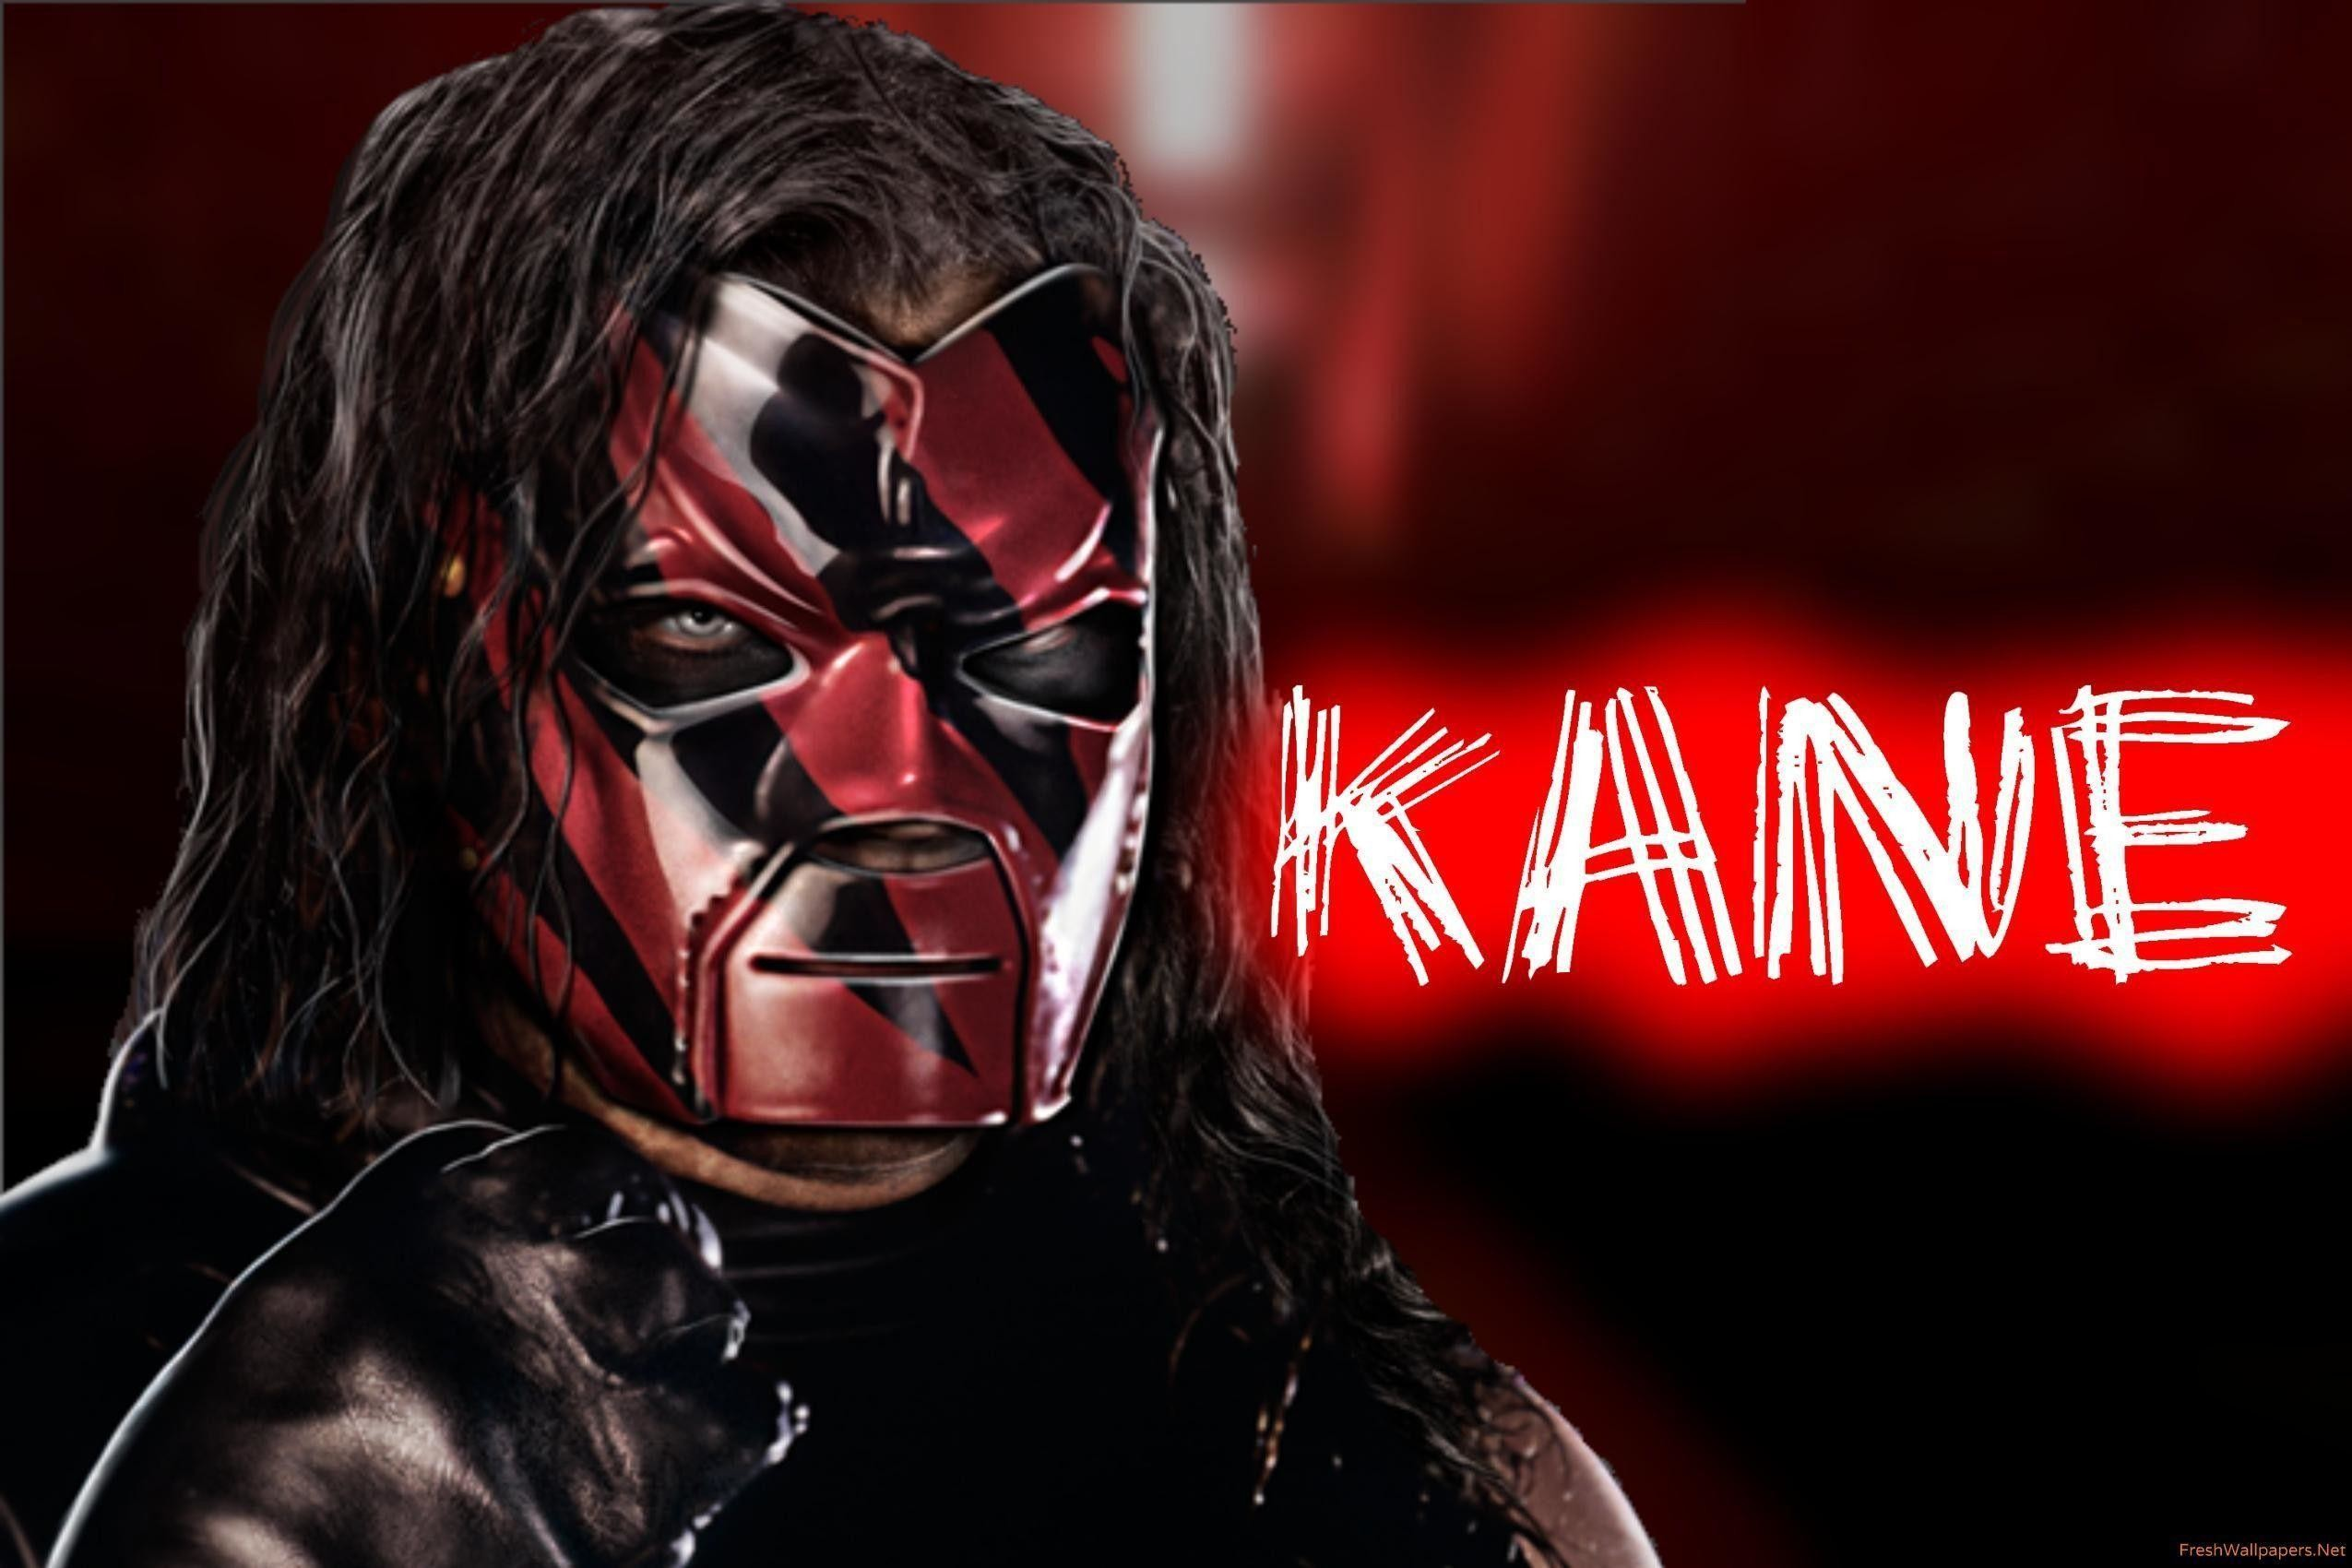 2550x1700 Kane WWE 2015 wallpapers | Freshwallpapers